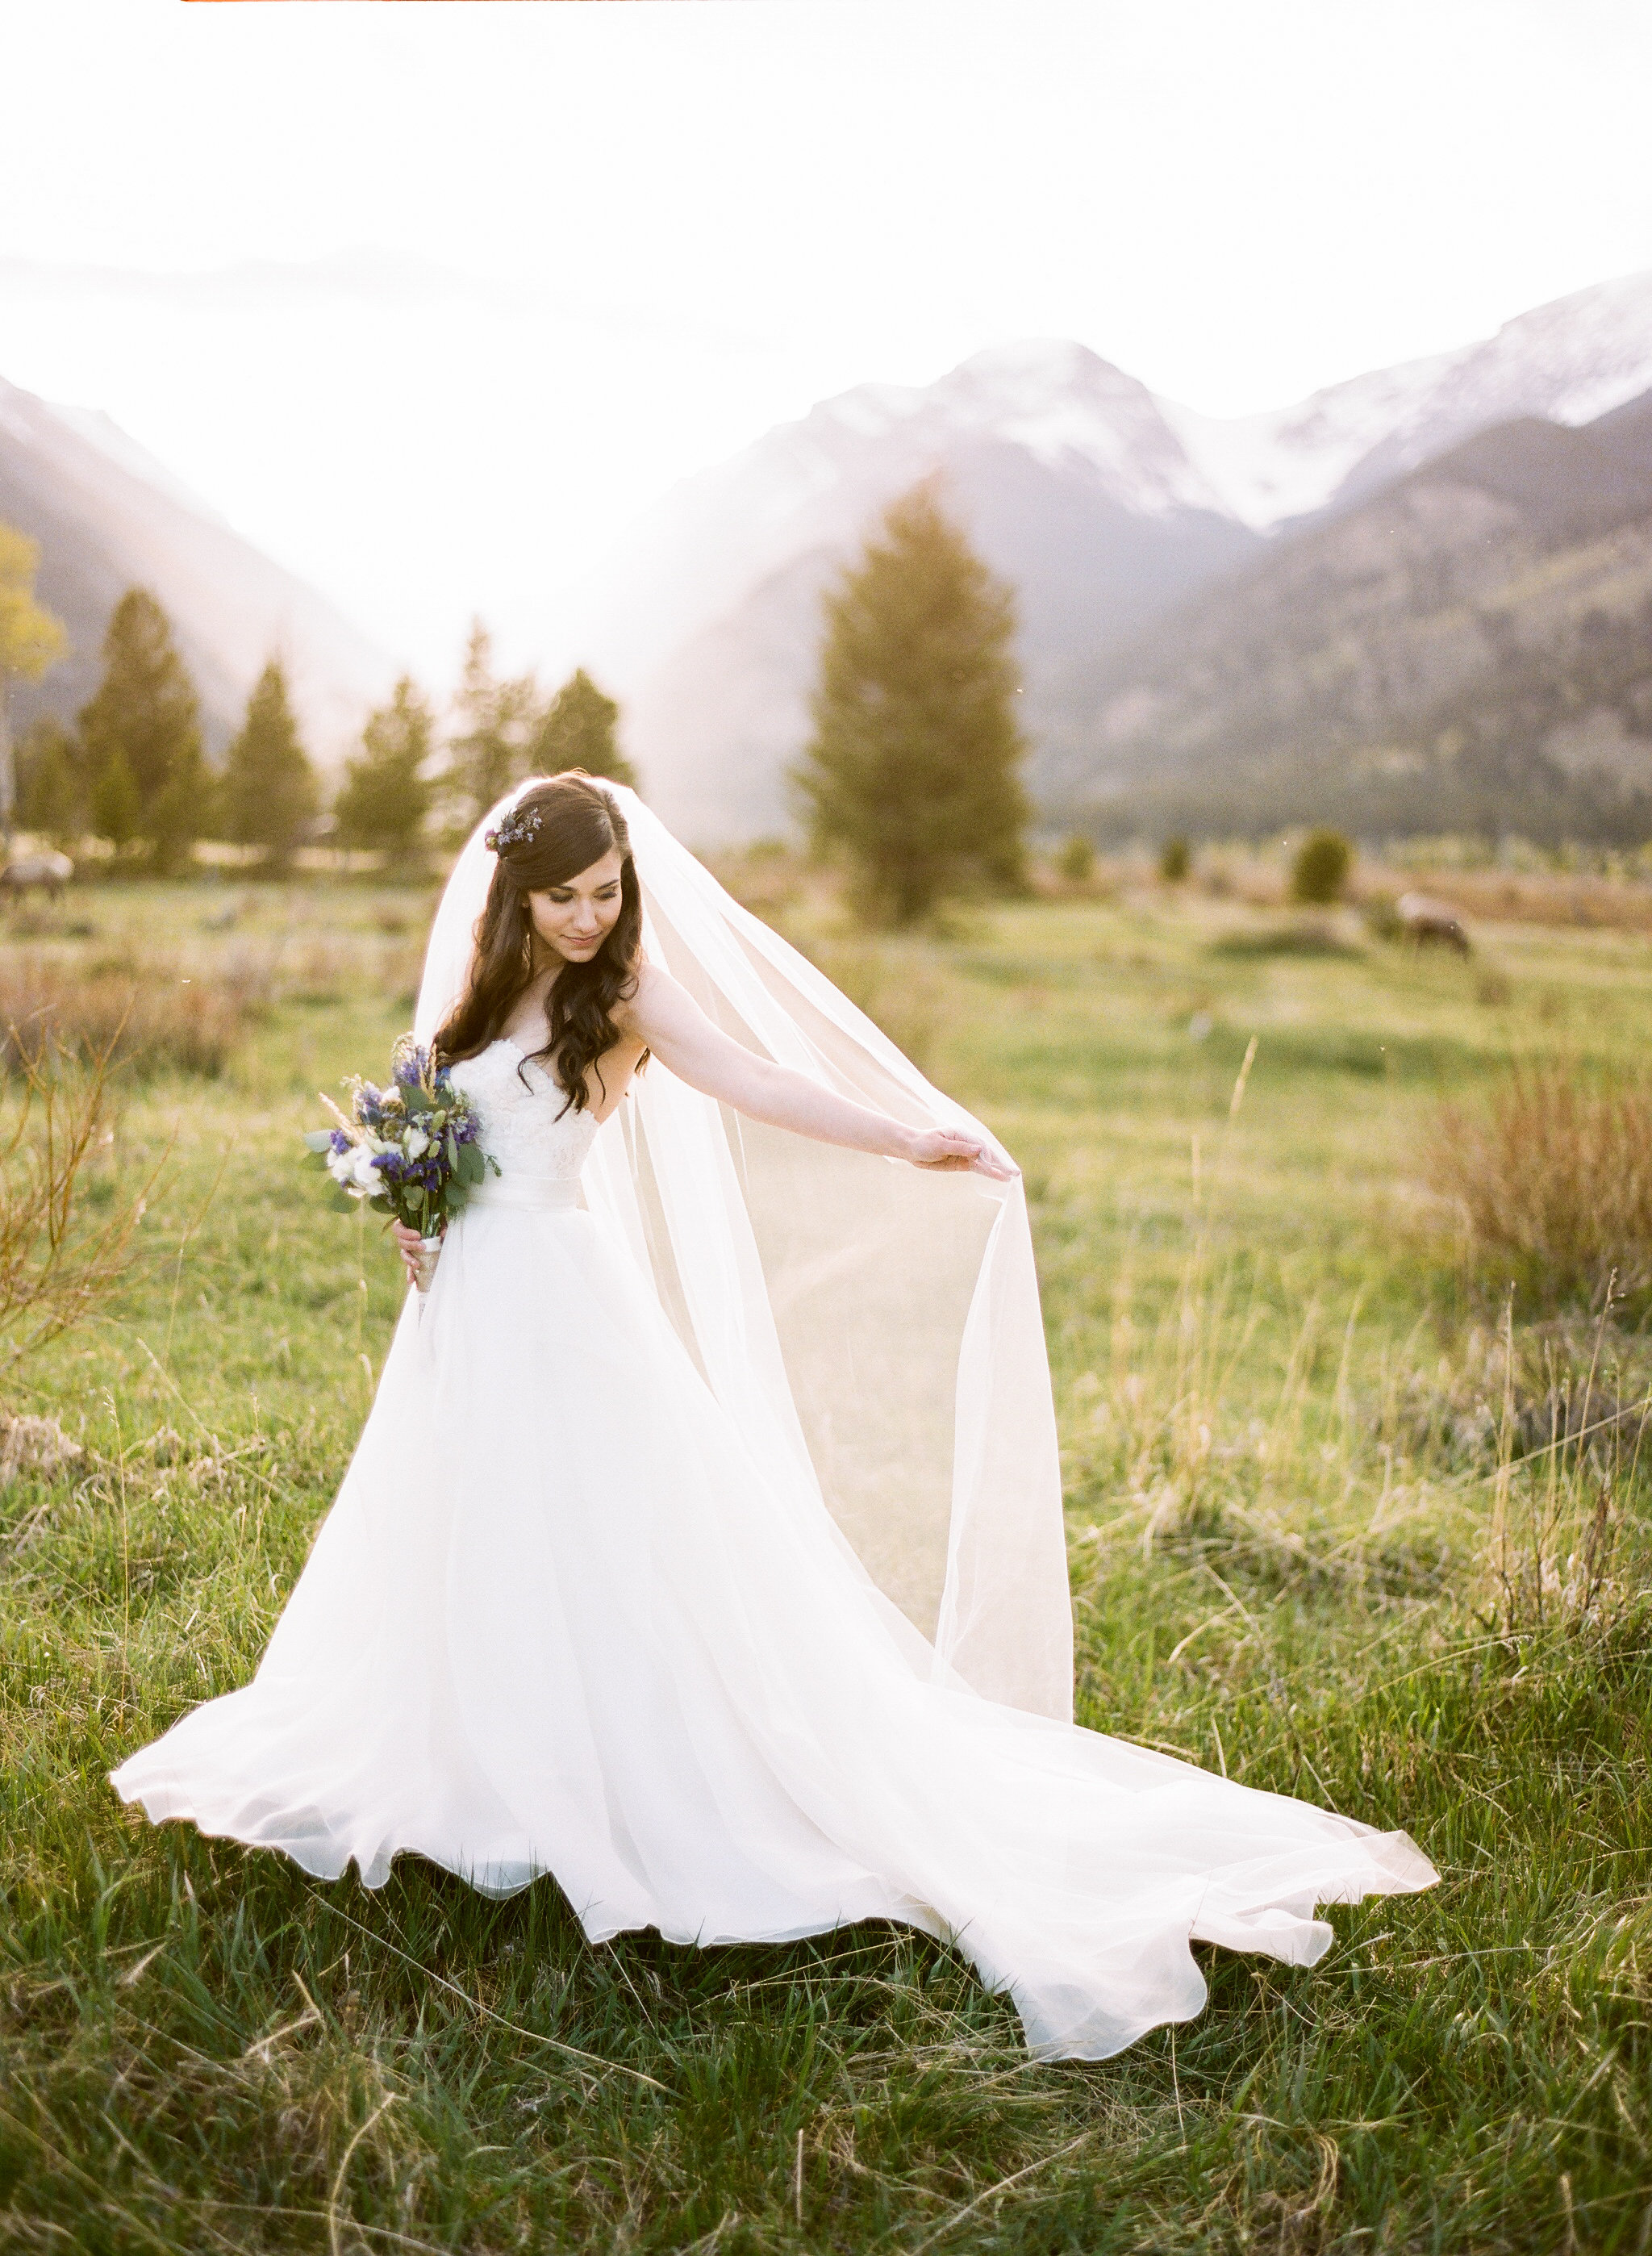 melisa-jackson-asheville-mountain-wedding-7.jpg